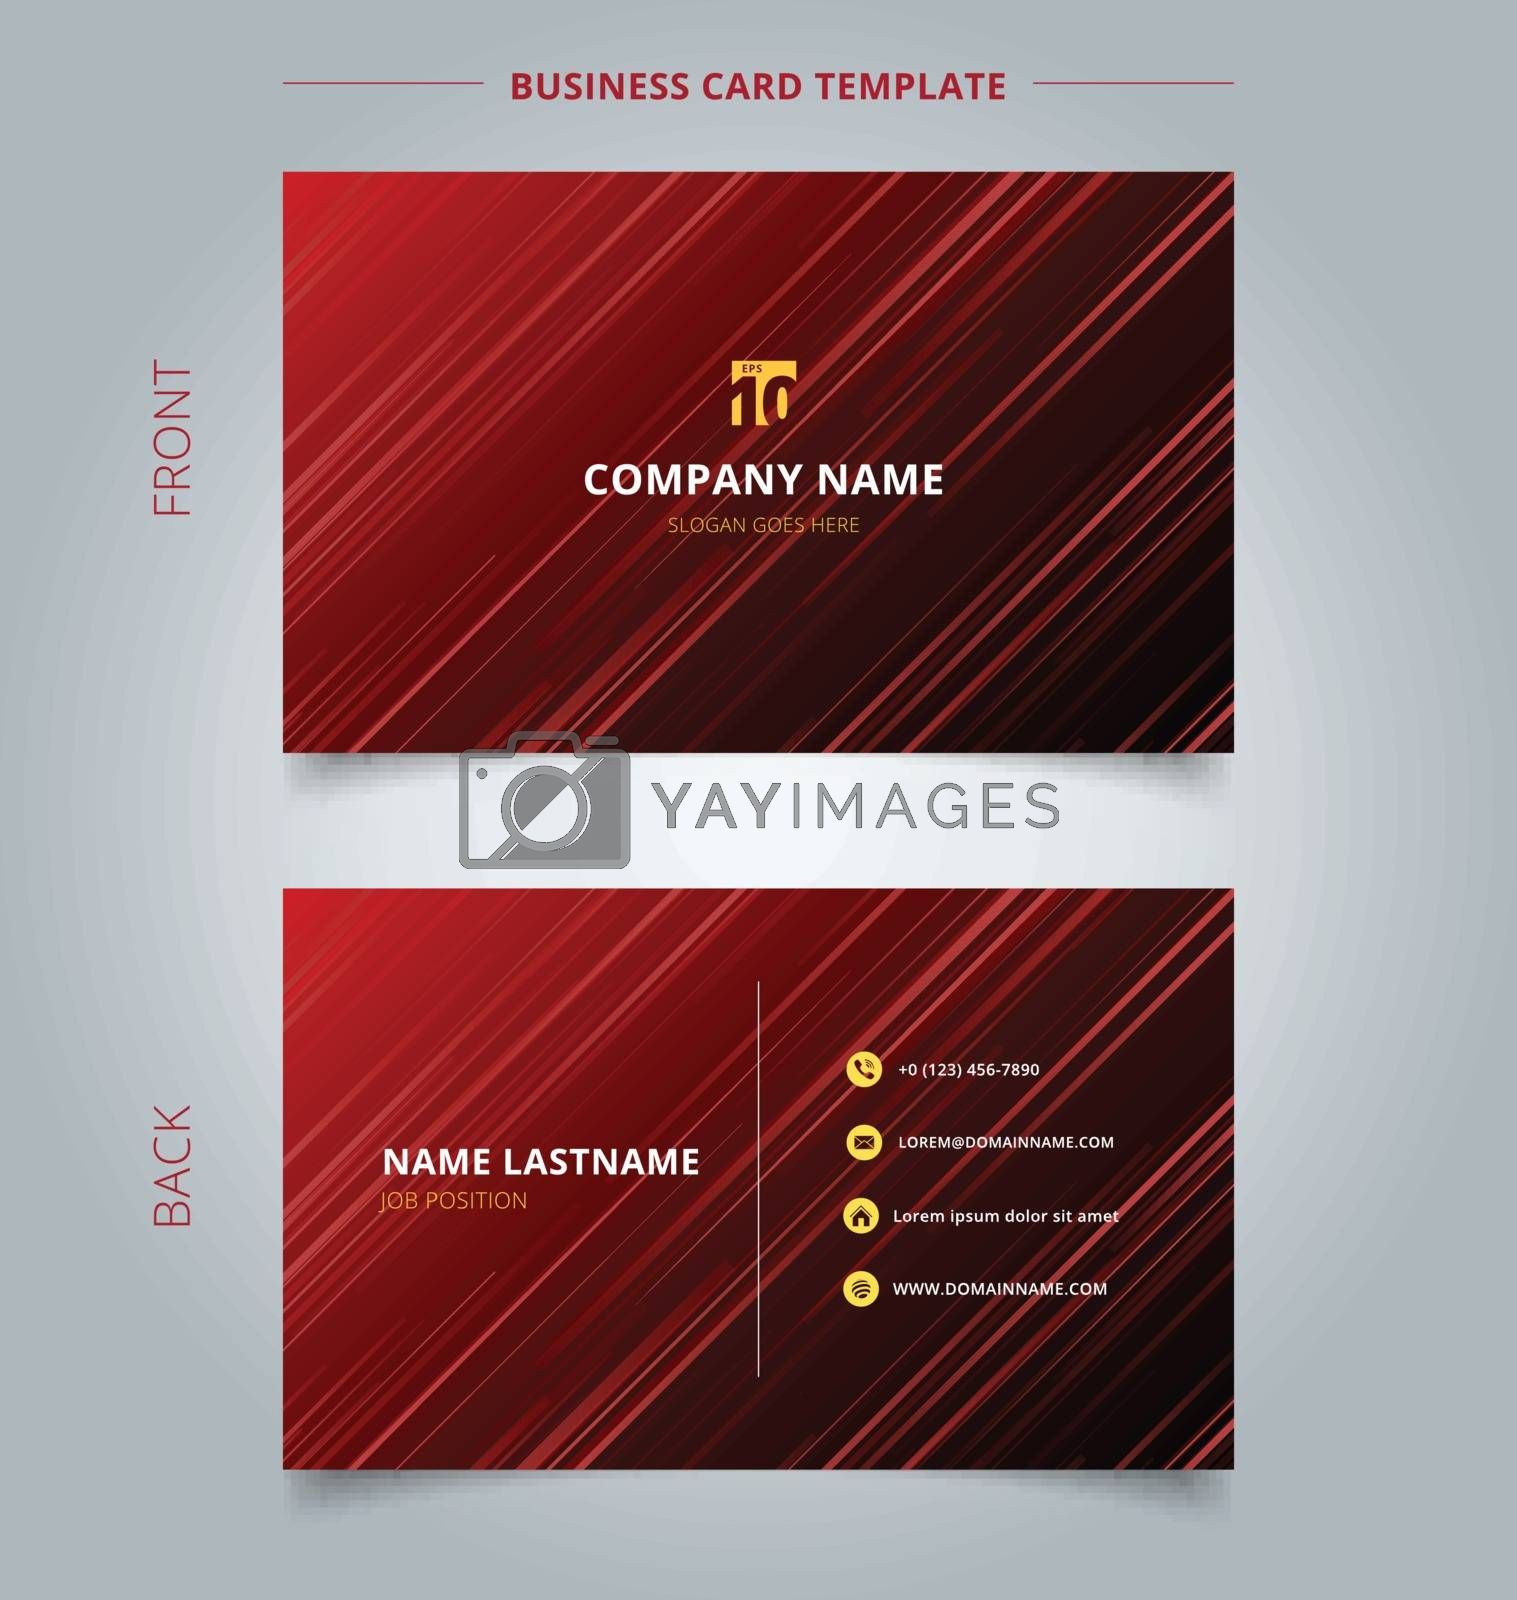 Creative business card and name card template technology red laser rays light and lighting effects diagonally on dark background. Abstract concept and commercial design. vector graphic illustration